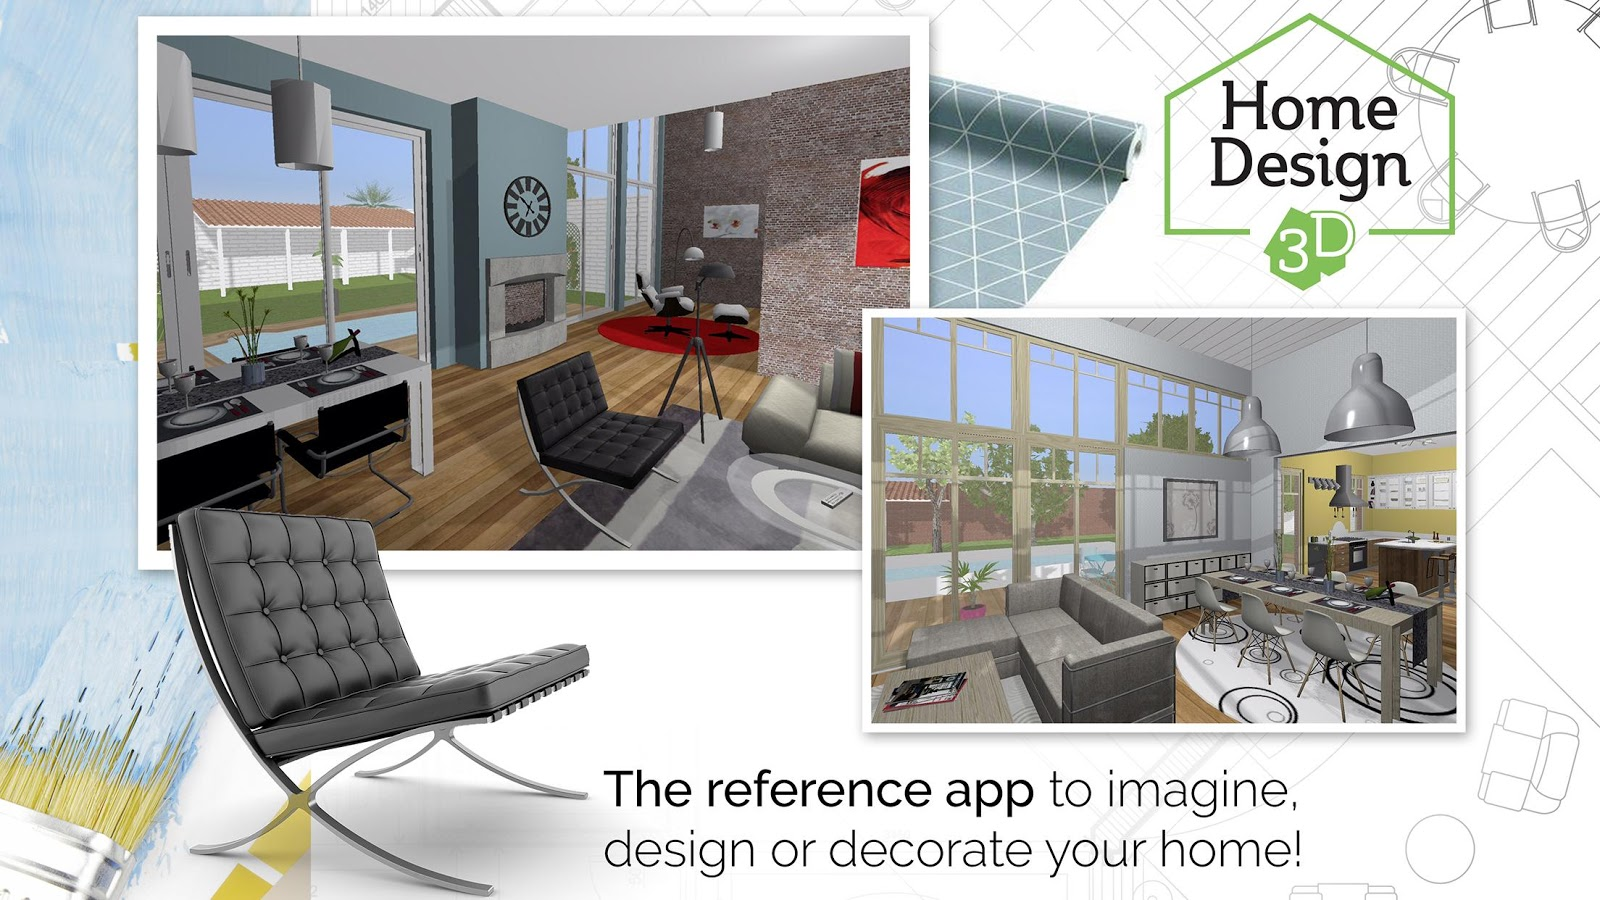 Home design 3d freemium android google play Home interior design app